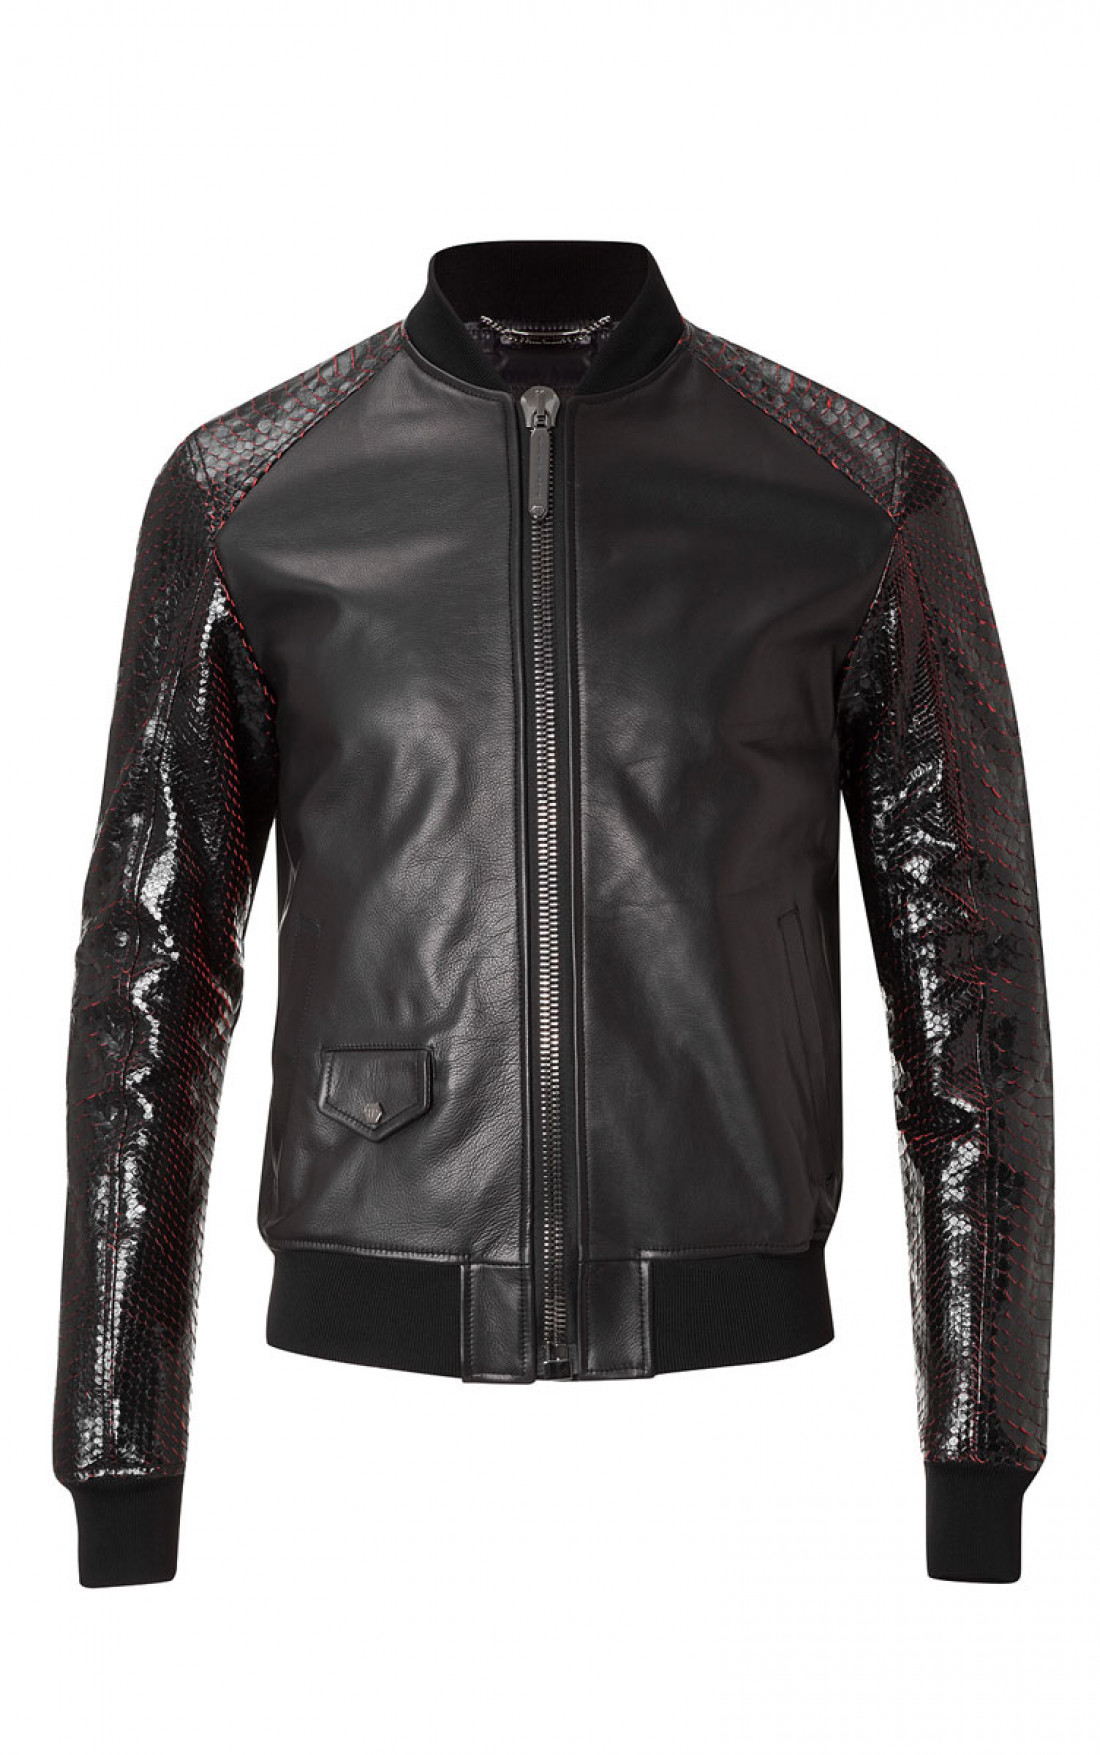 philipp plein leather jacket mens lofty black leather. Black Bedroom Furniture Sets. Home Design Ideas